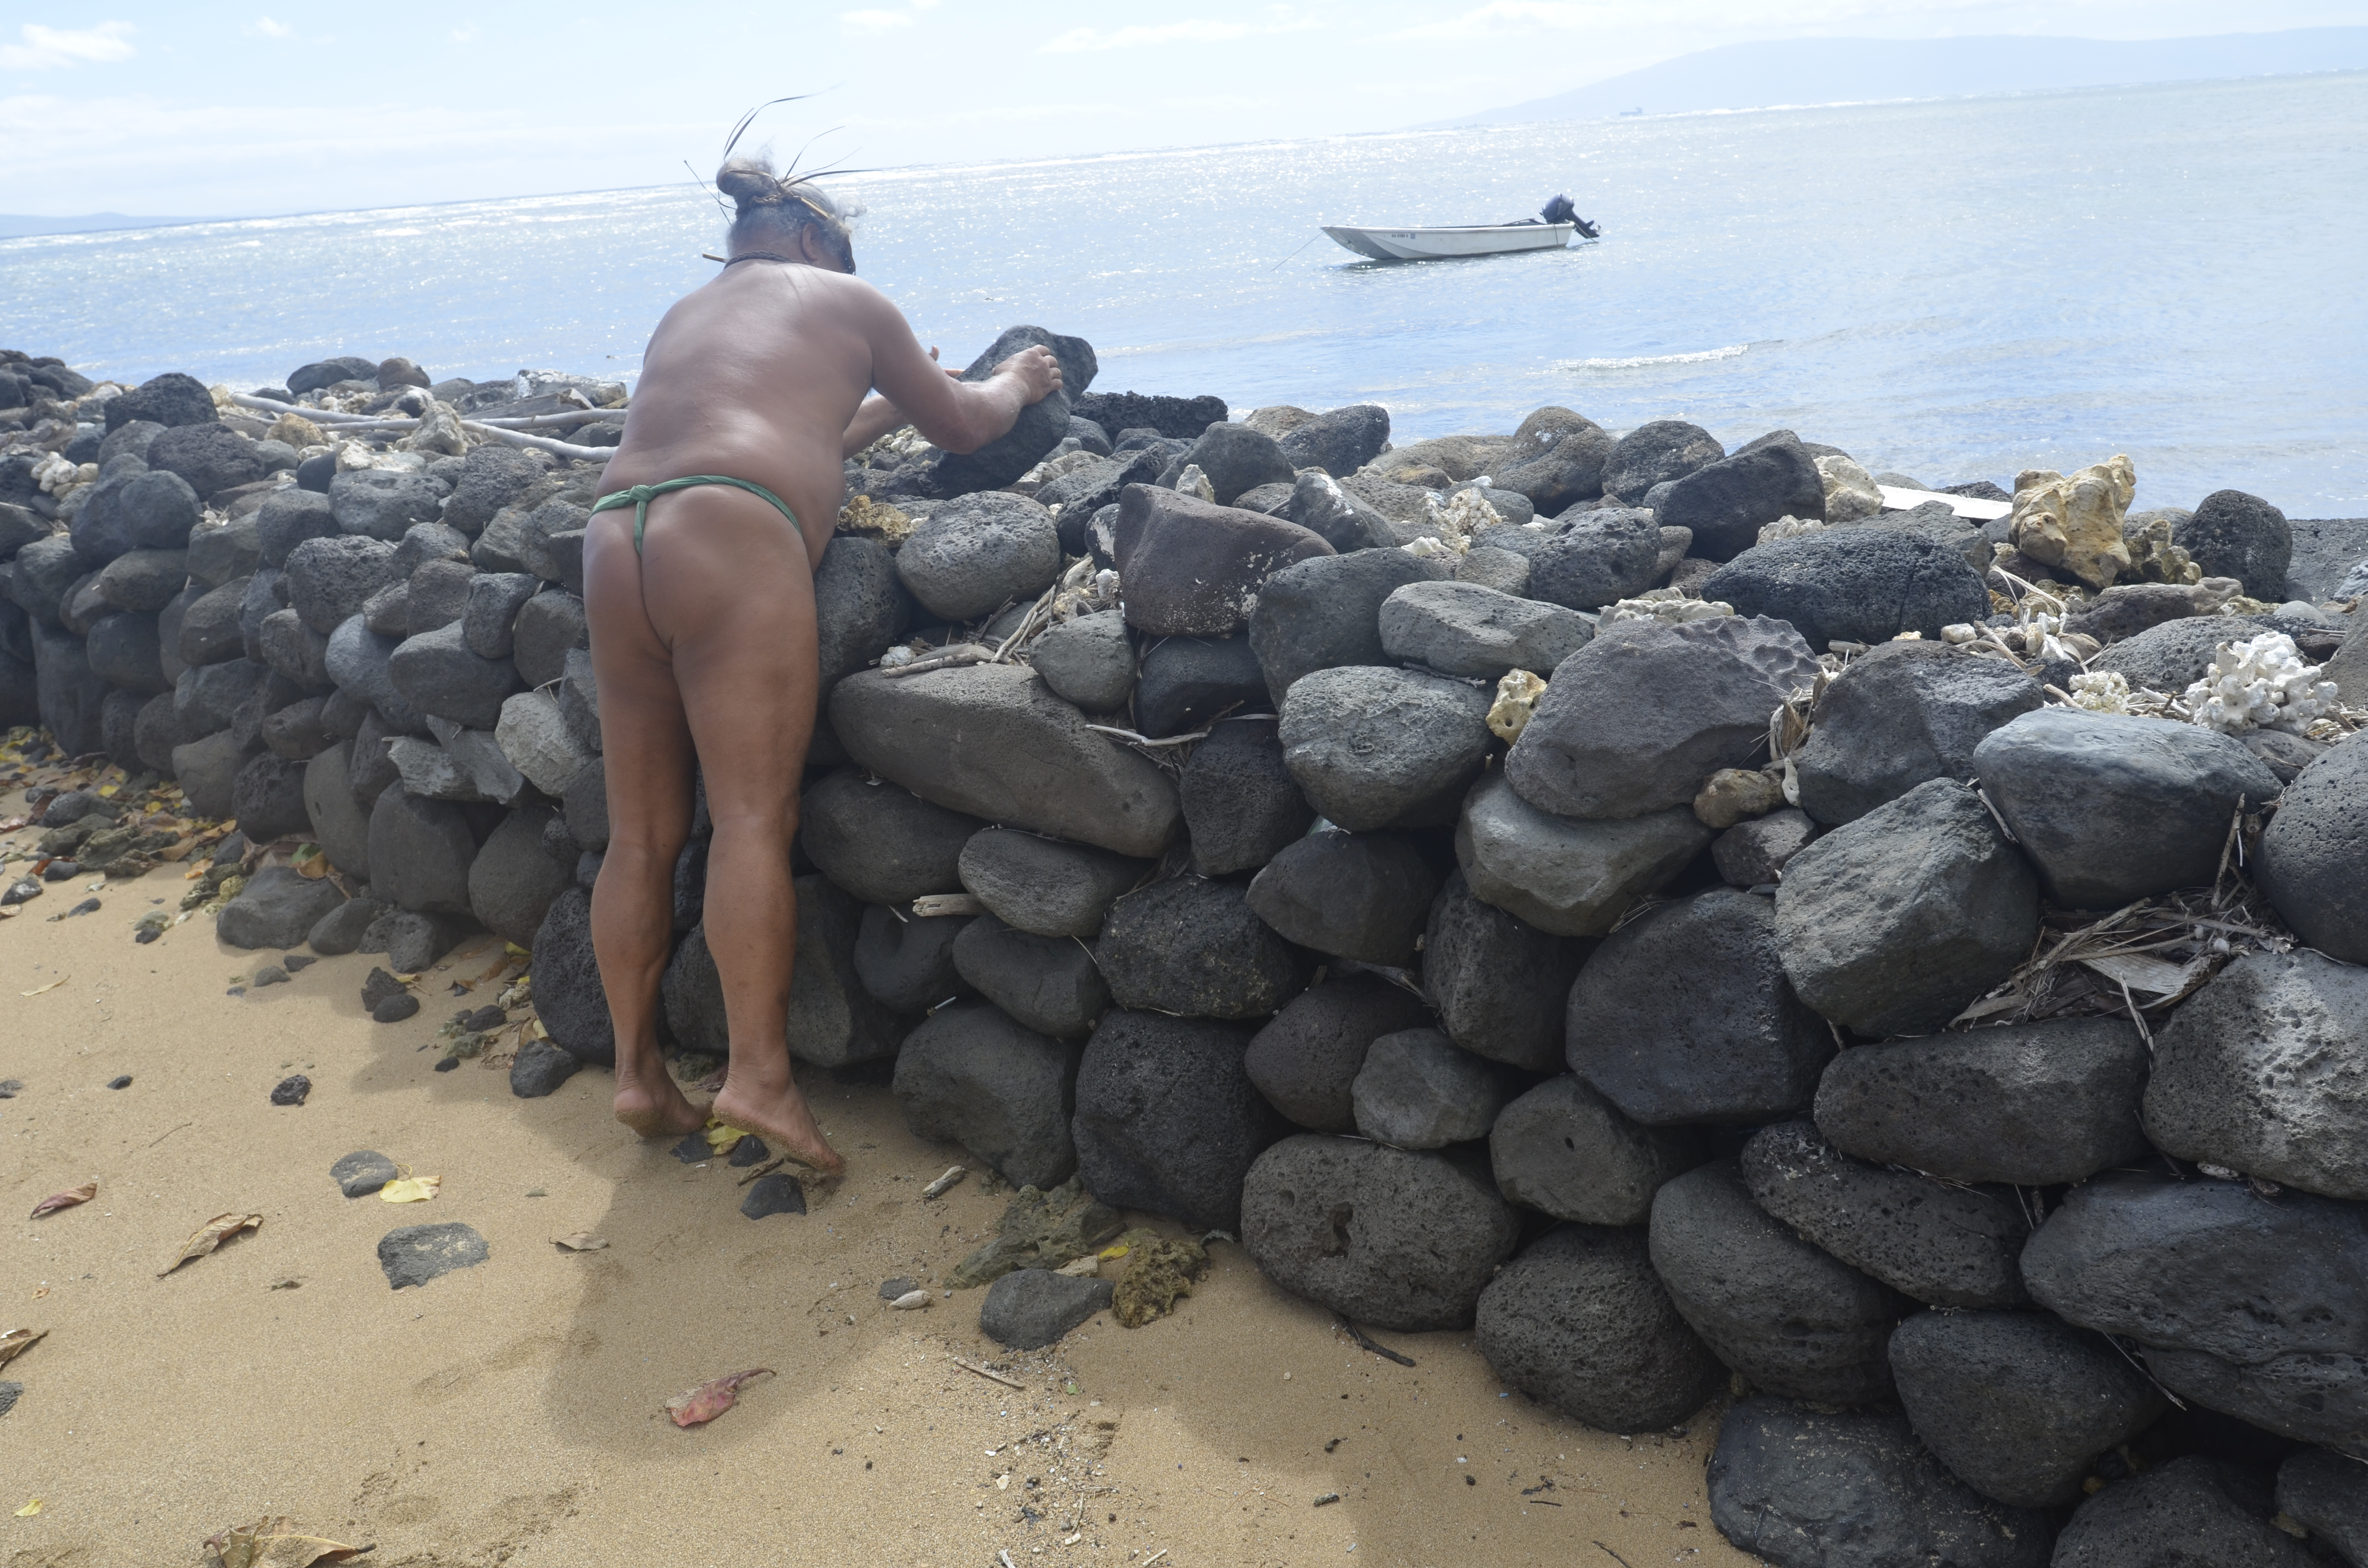 Leimana demonstrates the way to place rocks for a fishpond. He says hula builds up the right muscles for this.